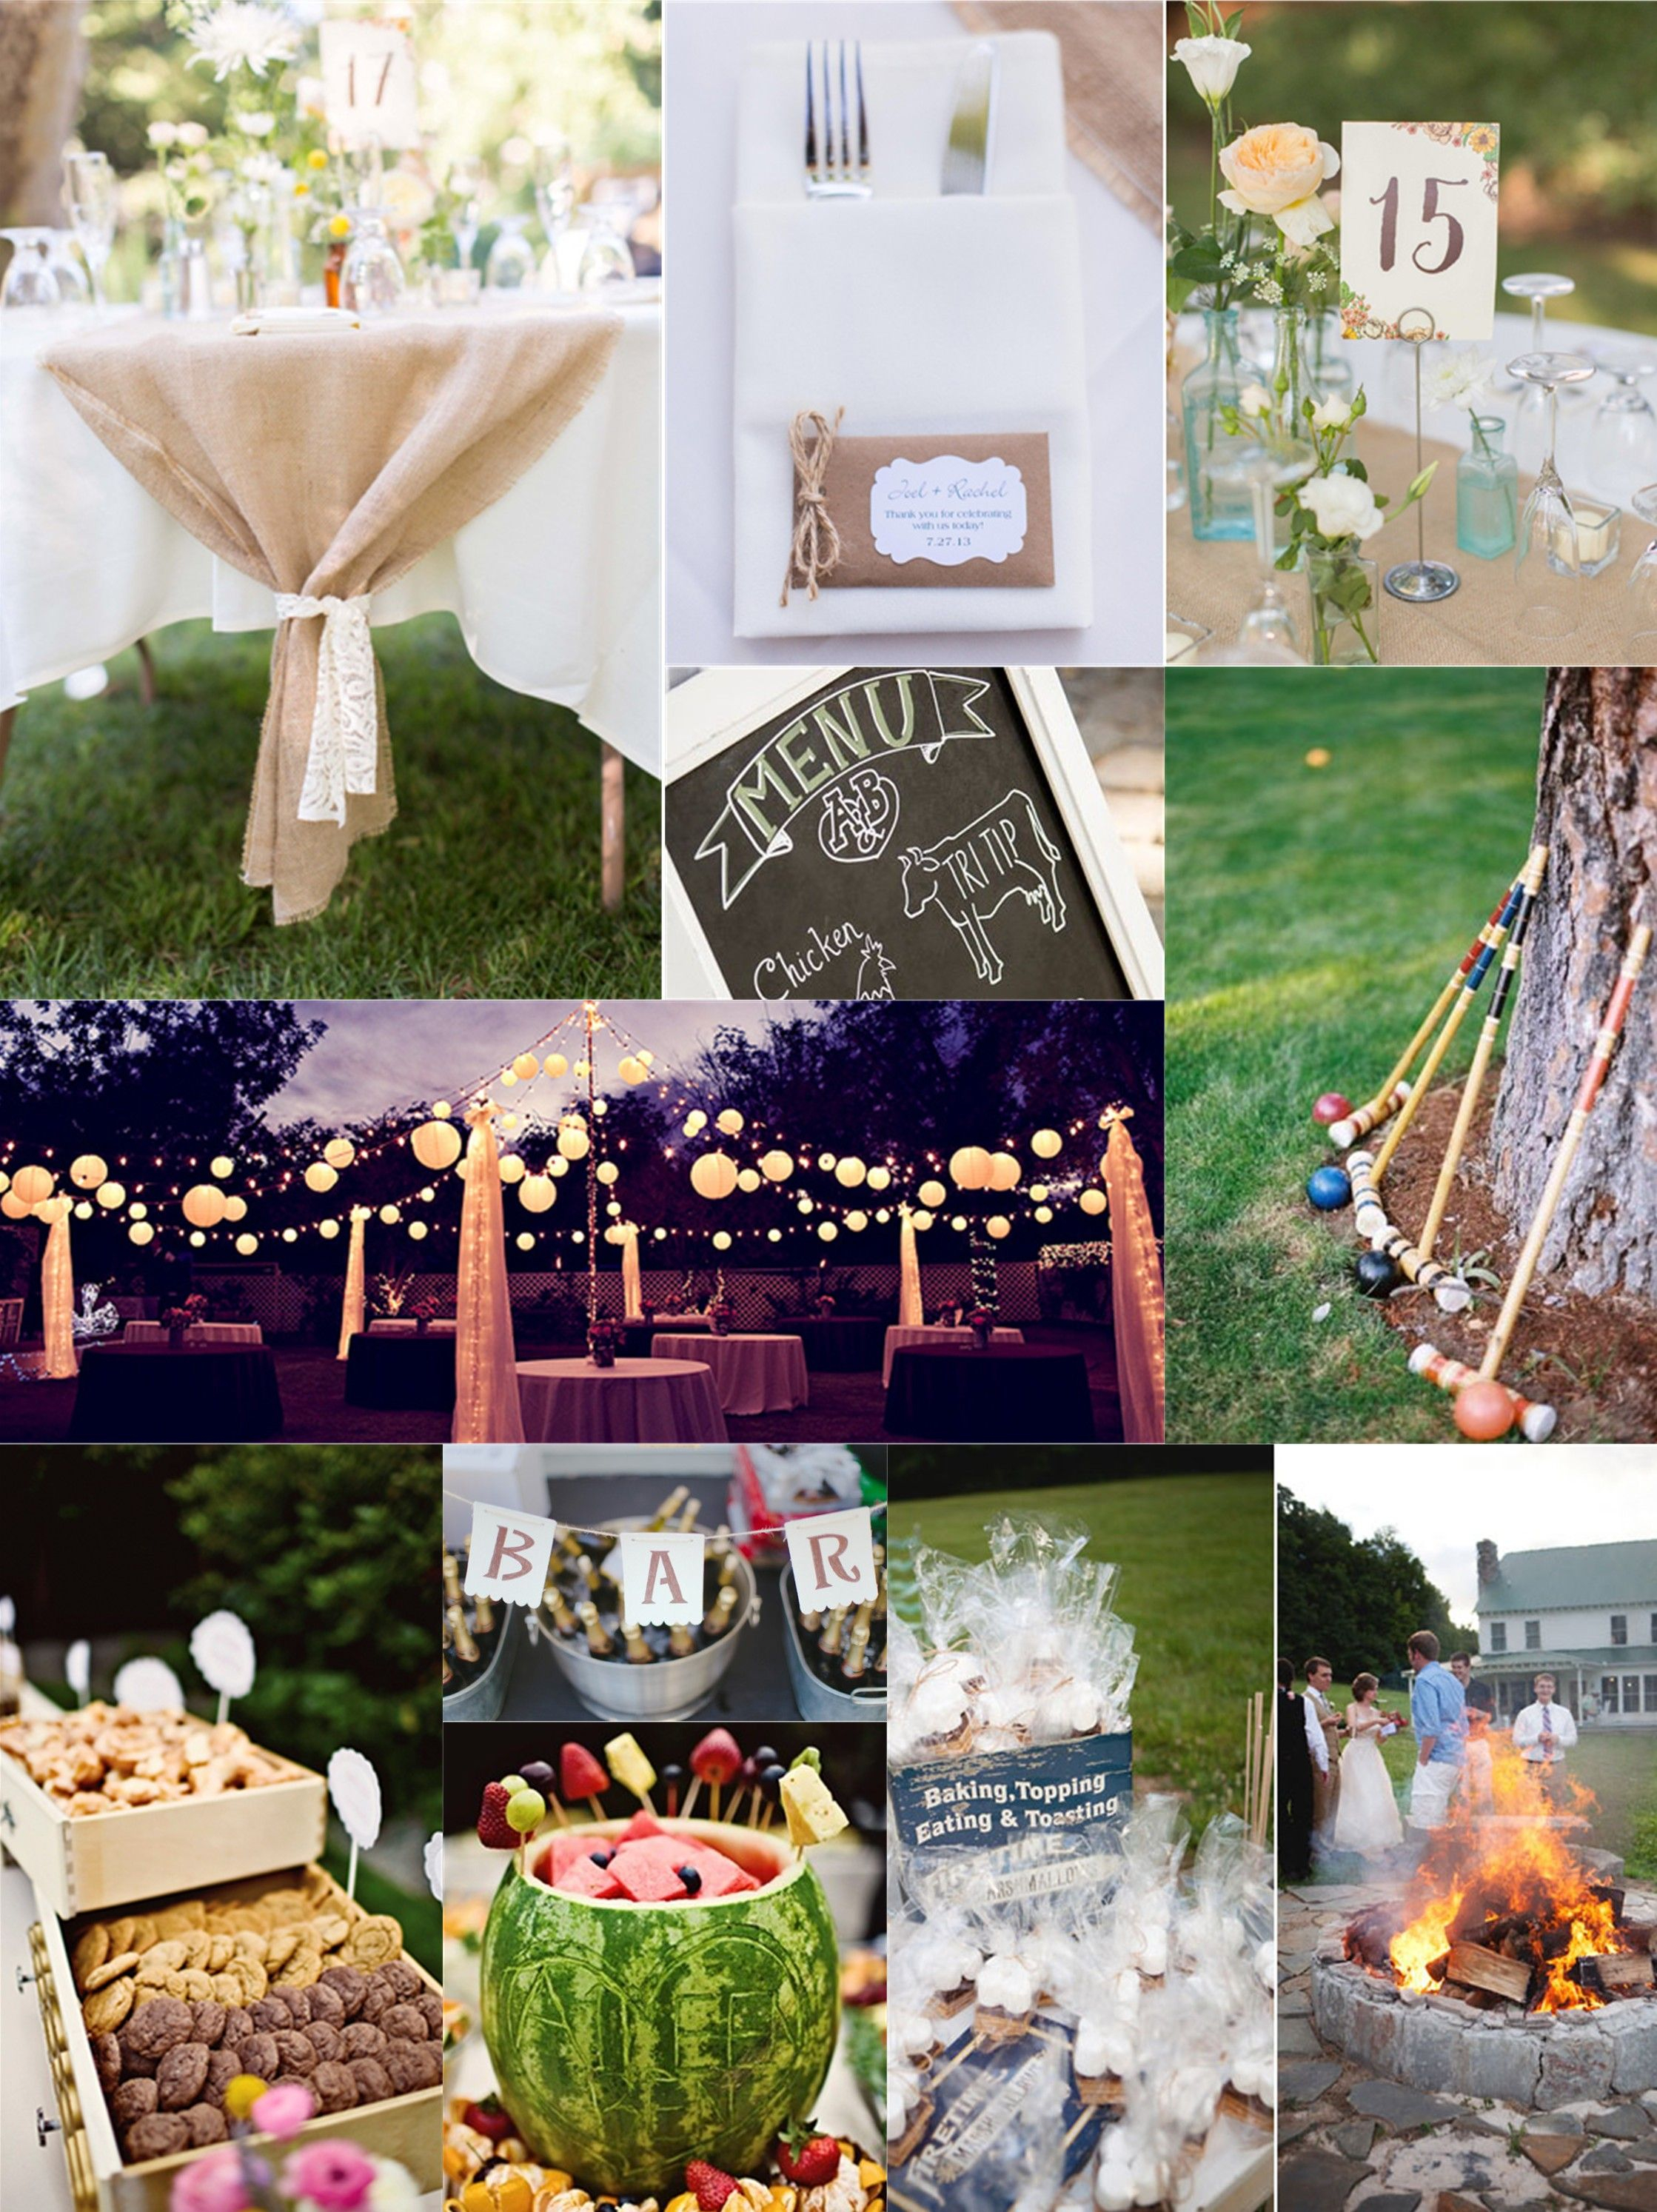 Essential Guide To A Backyard Wedding On A Budget Country Wedding with Backyard Wedding Reception Ideas On A Budget